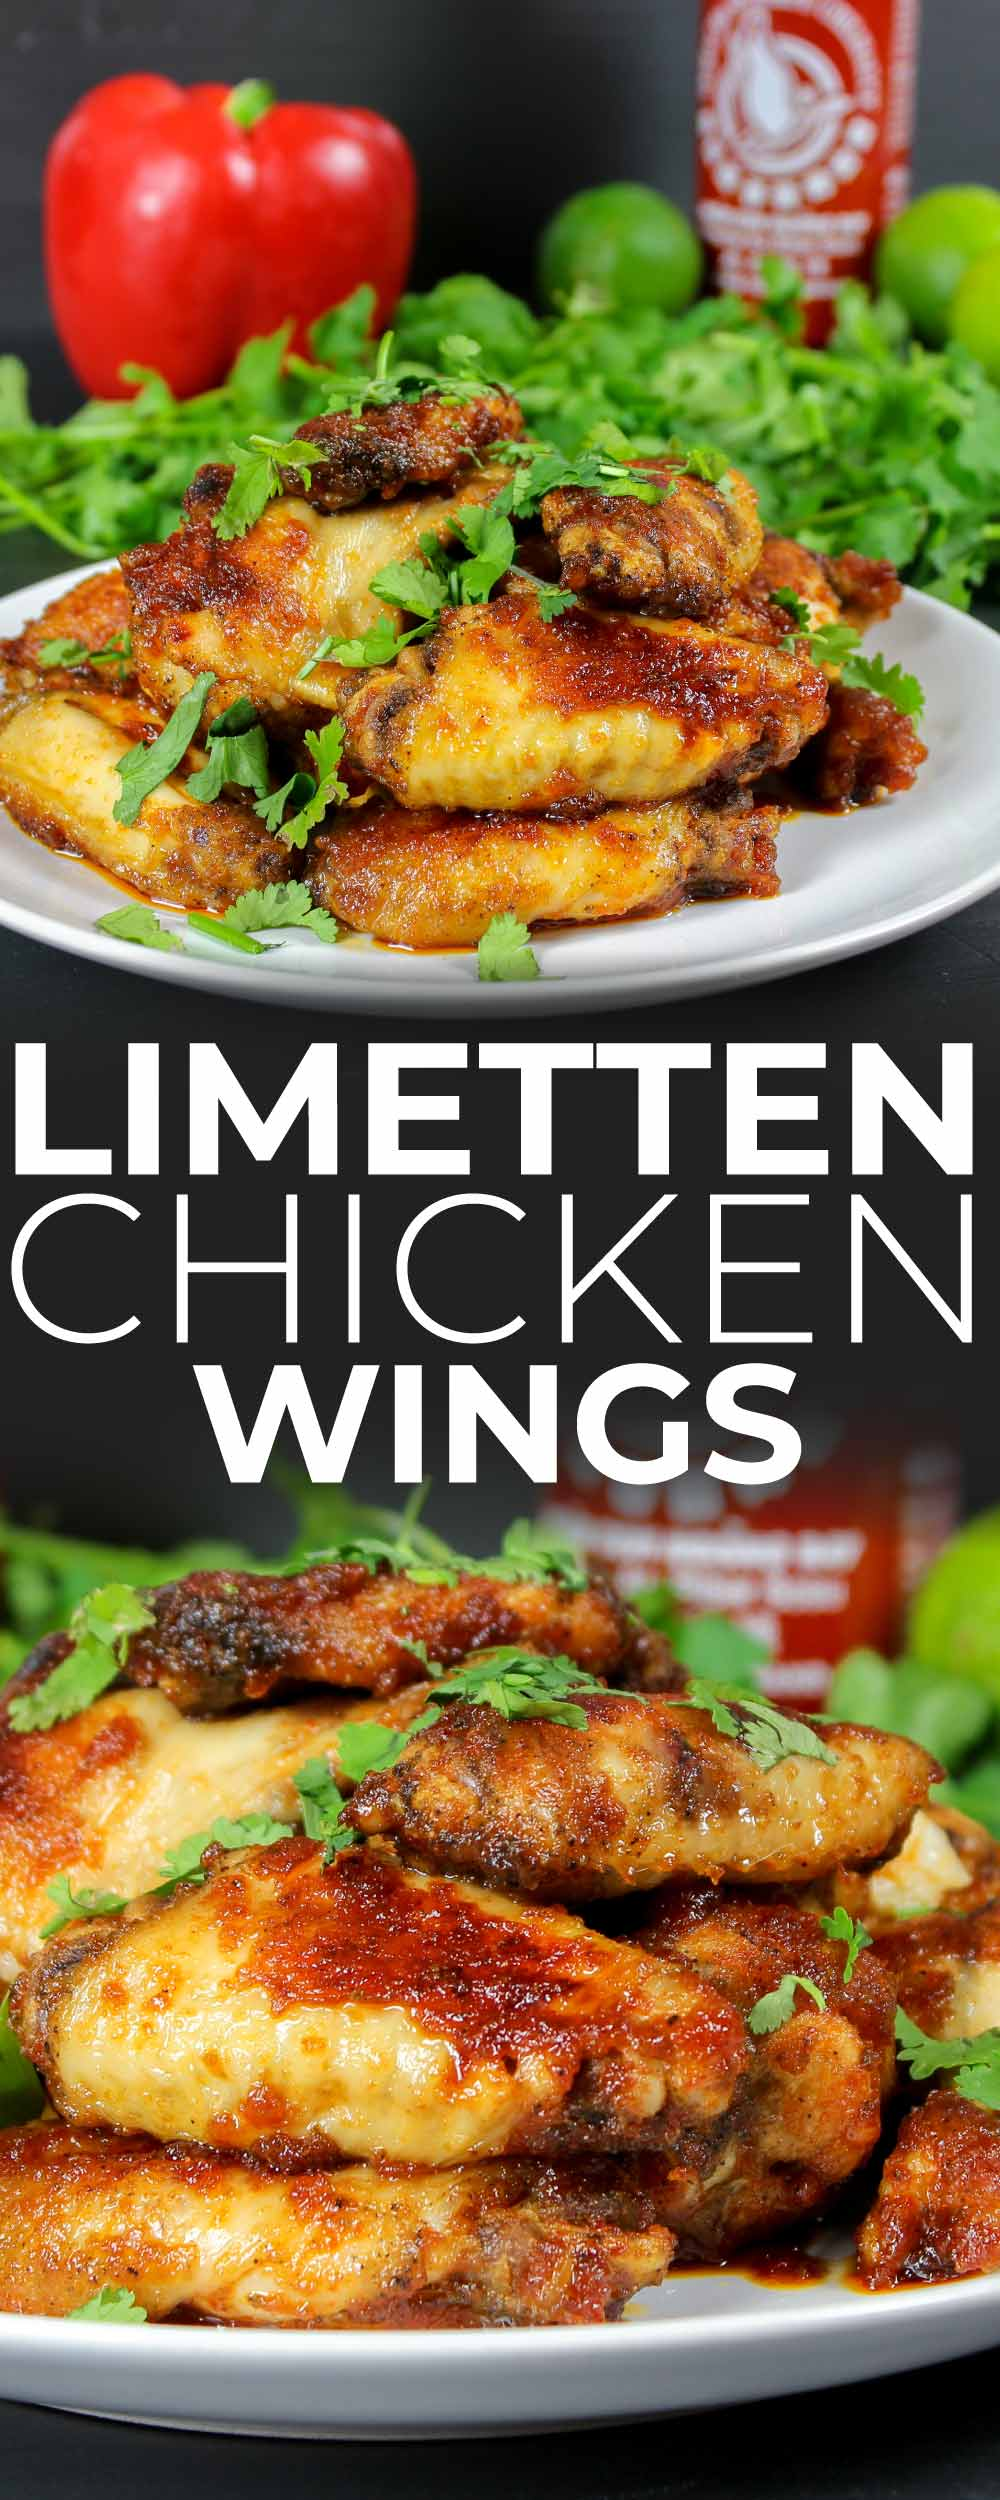 Limetten Chicken Wings Pin